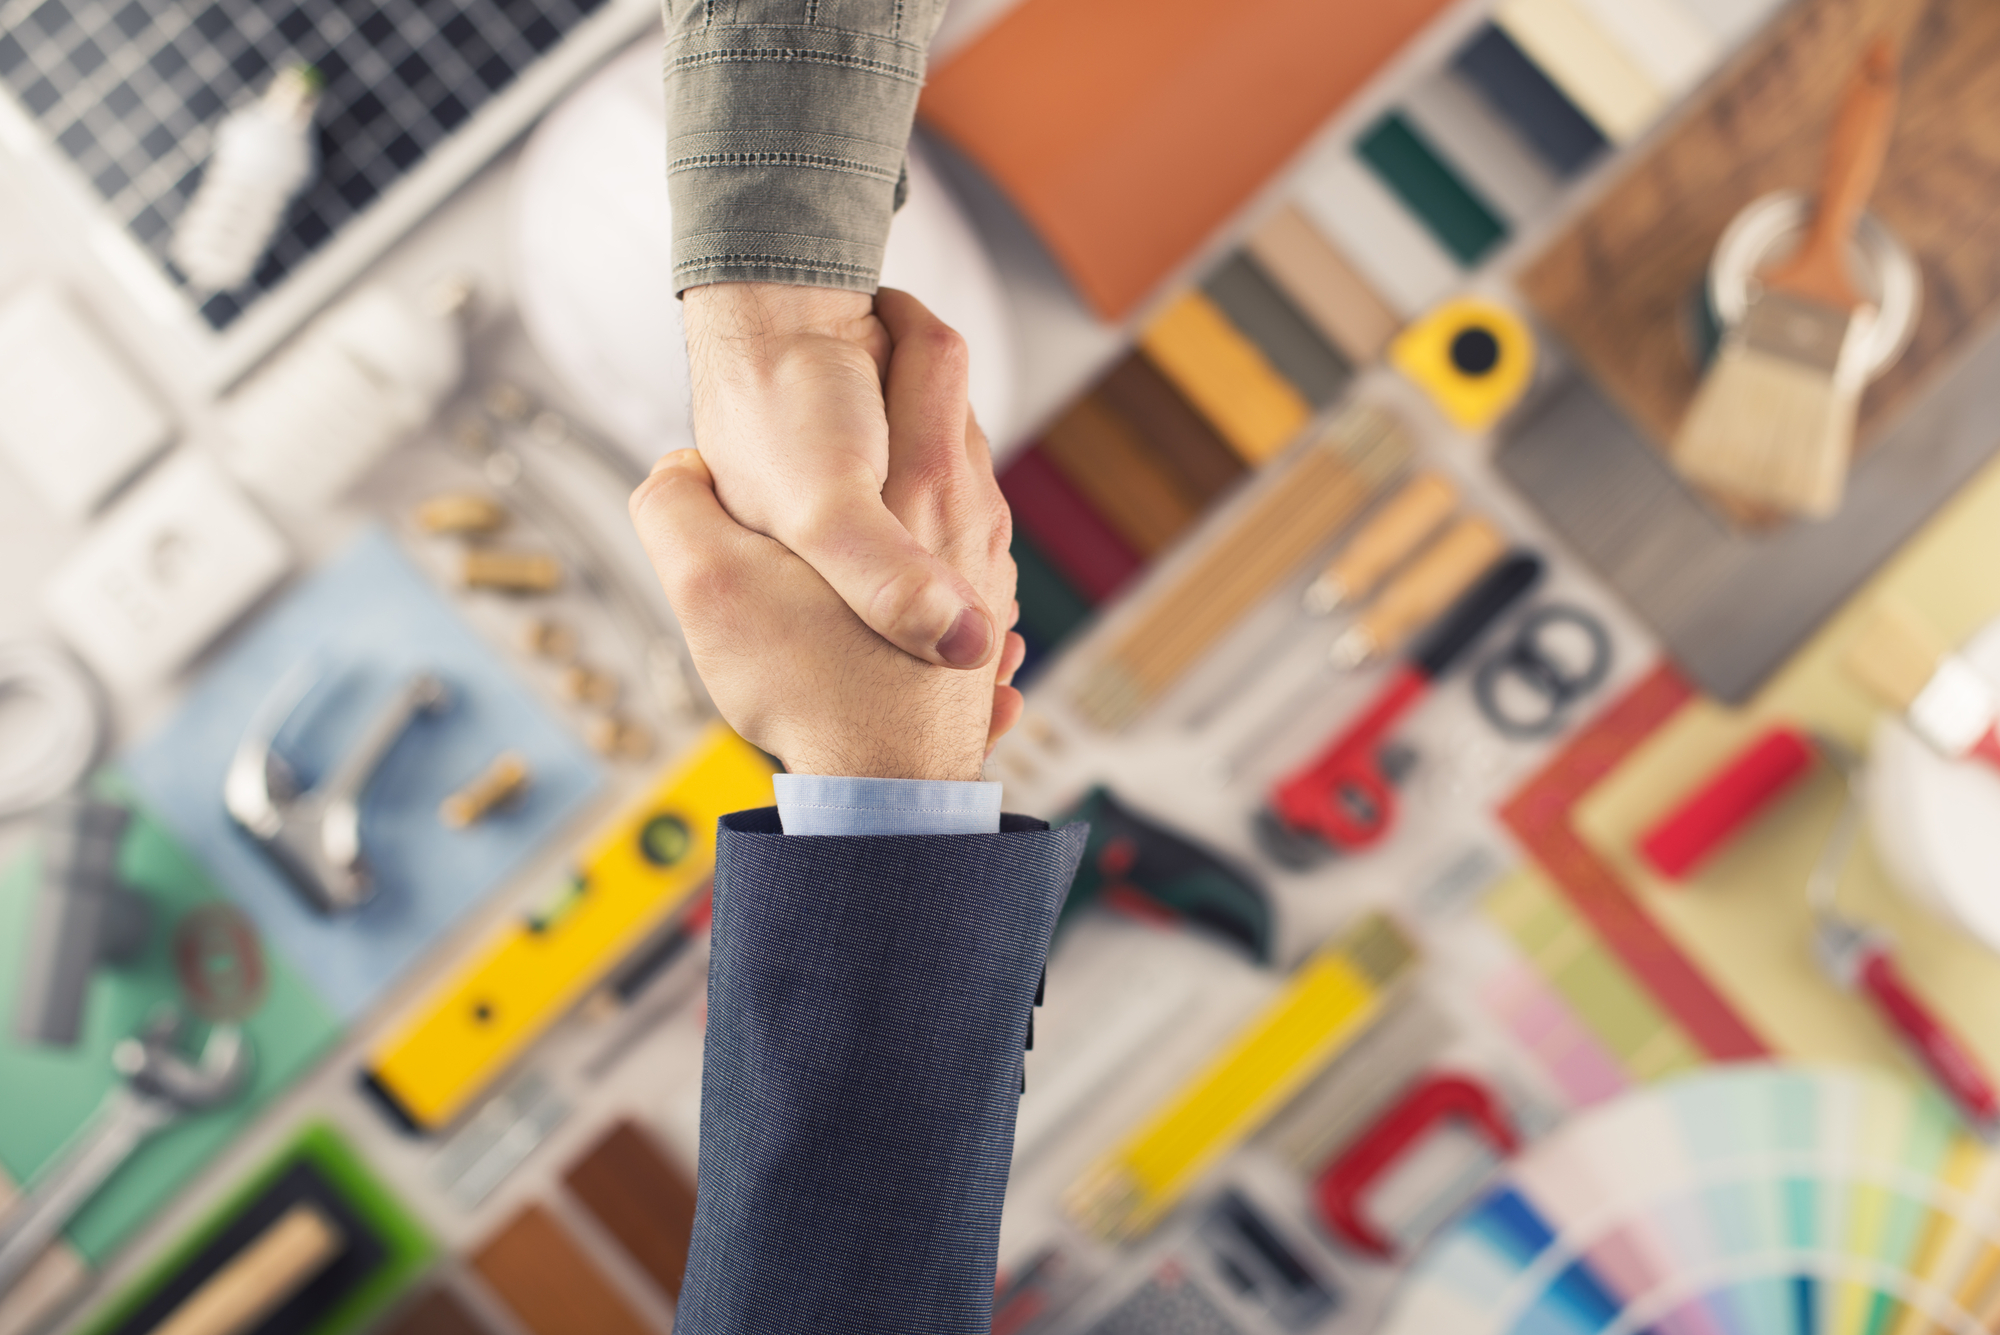 7 Things to Look for In Your Home Contractor Agreement